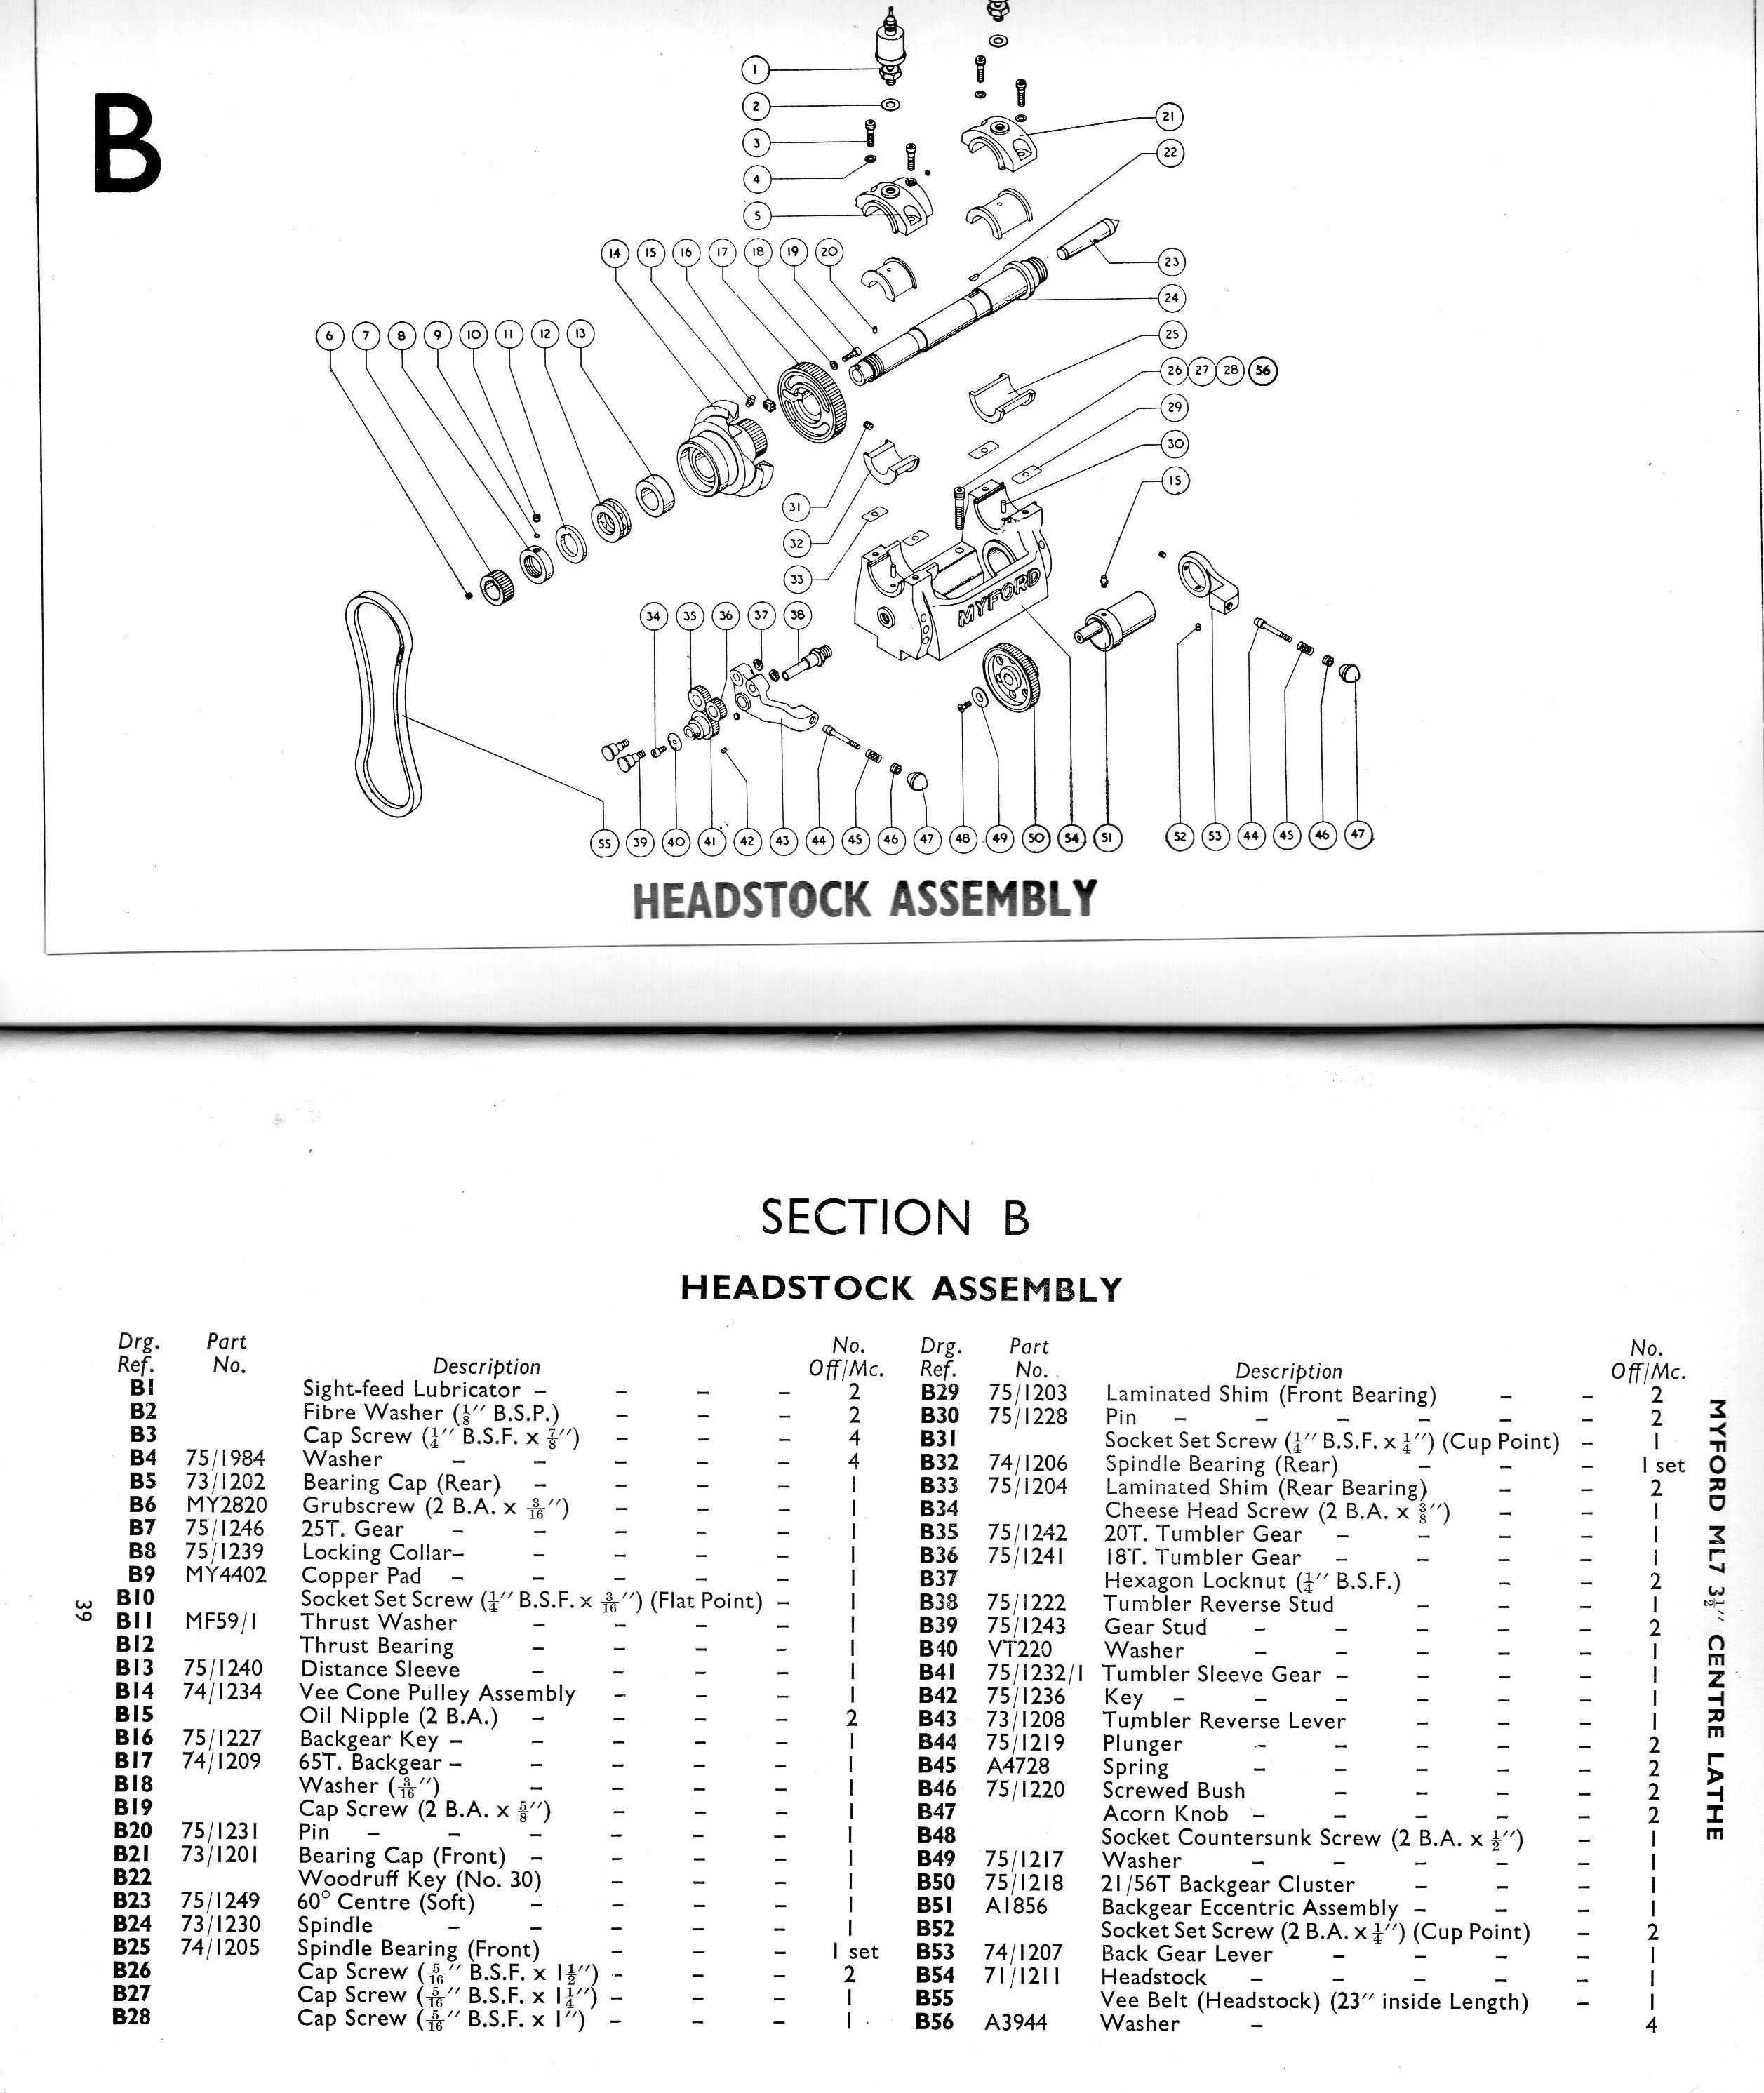 medium resolution of exploded parts diagram engineering tools lathe odd stuff freaky things tower